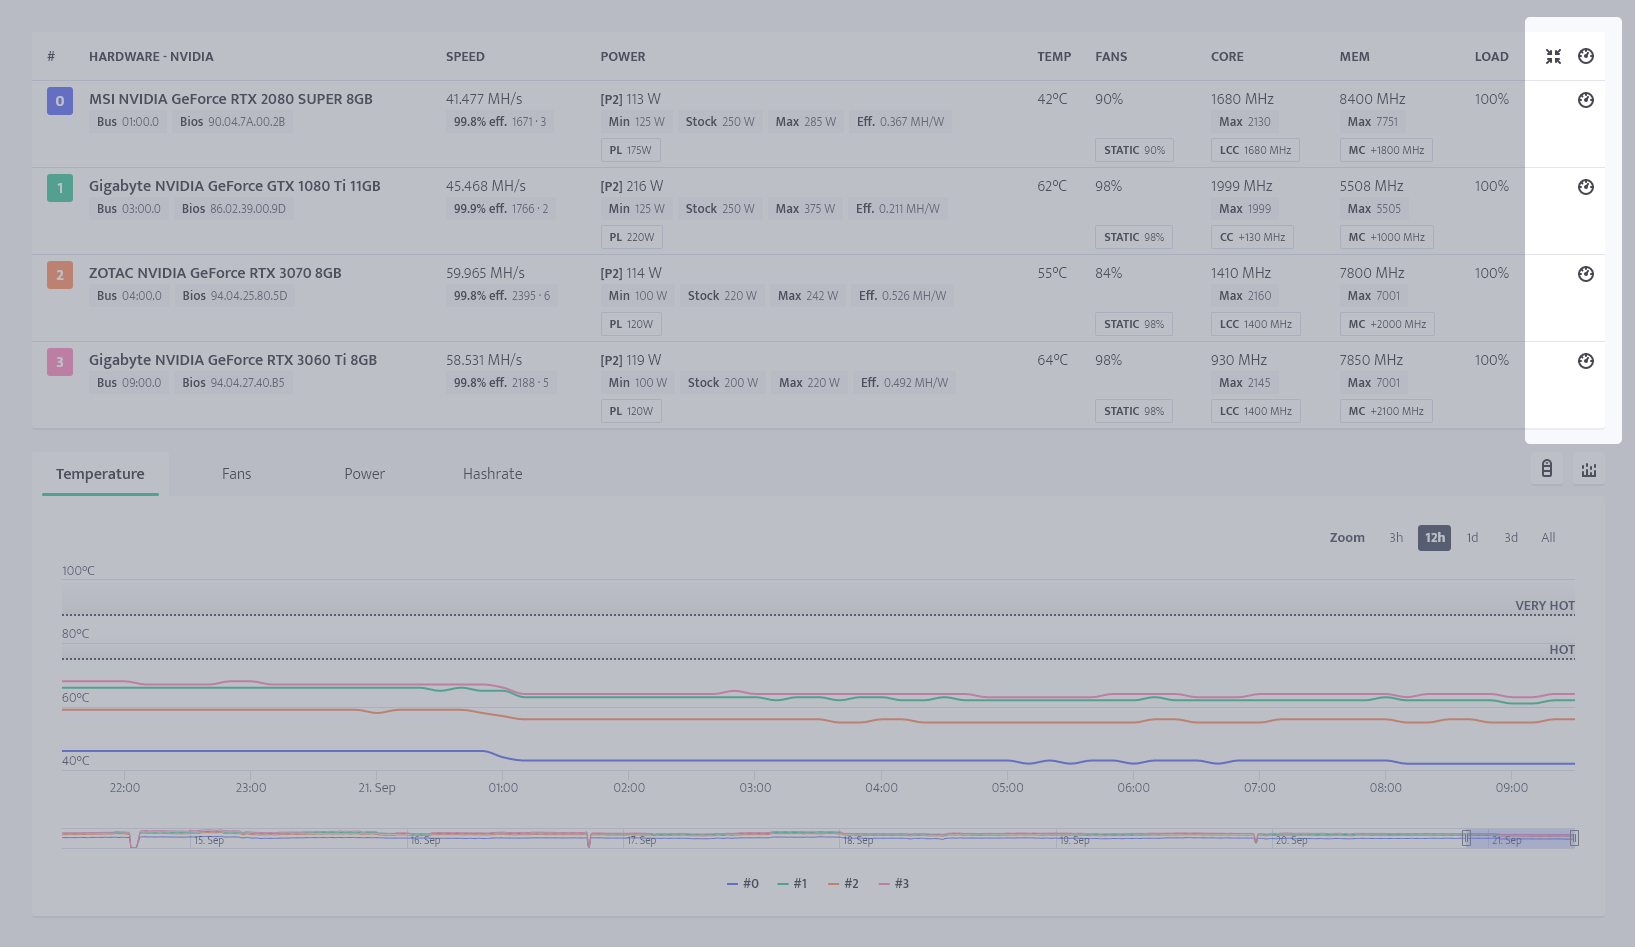 minerstat - Worker's profile - Hardware actions